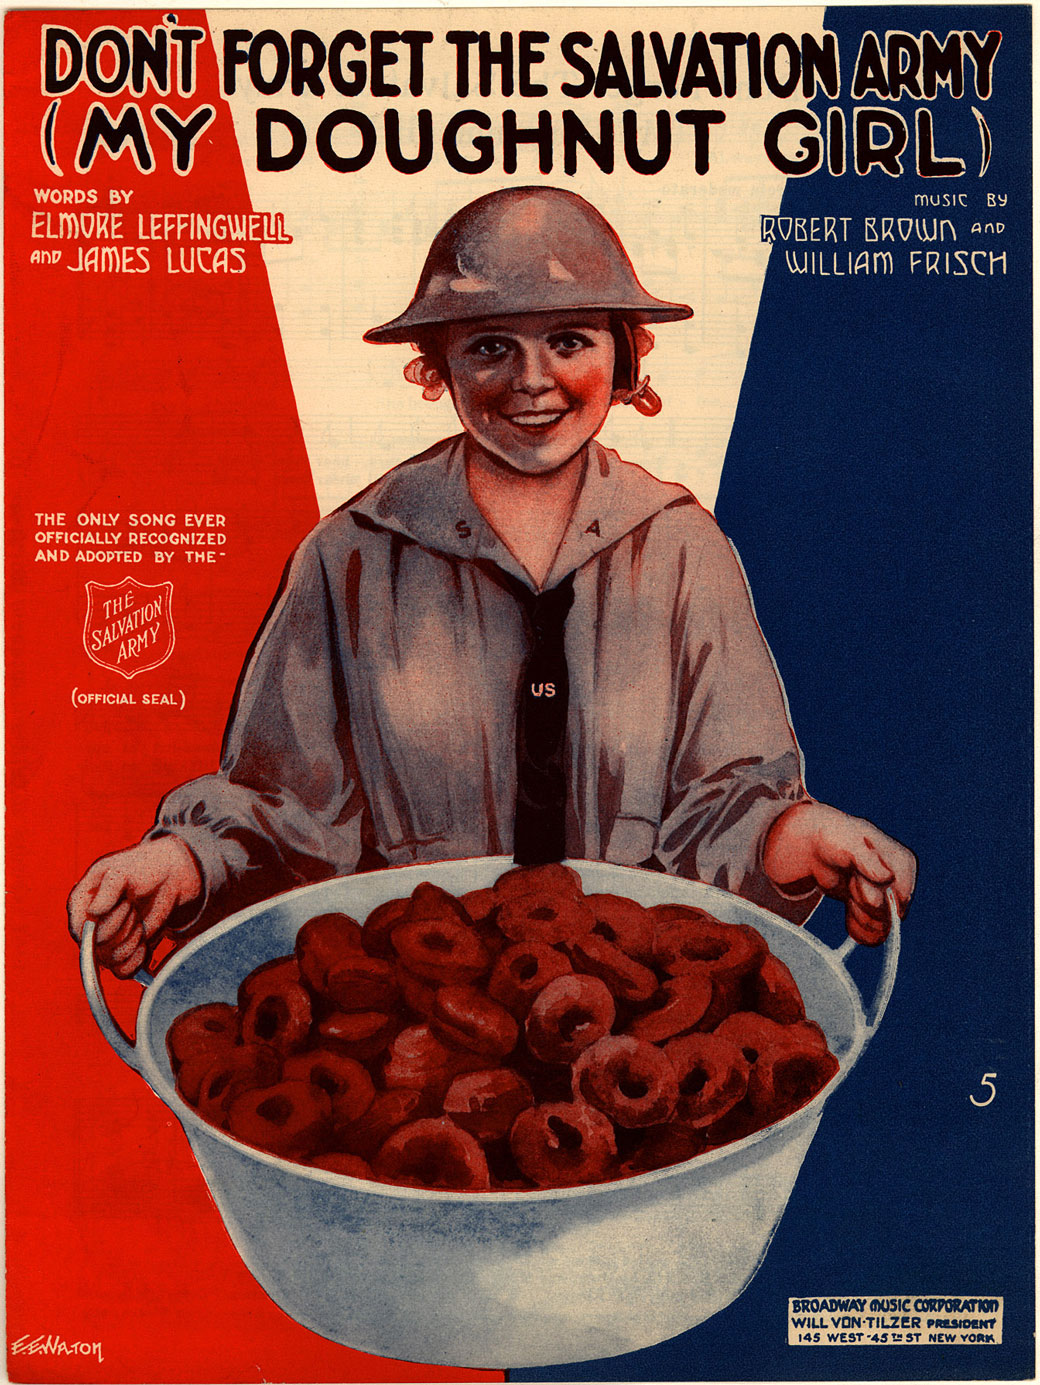 Doughnut Girls The Women Who Fried Donuts And Dodged